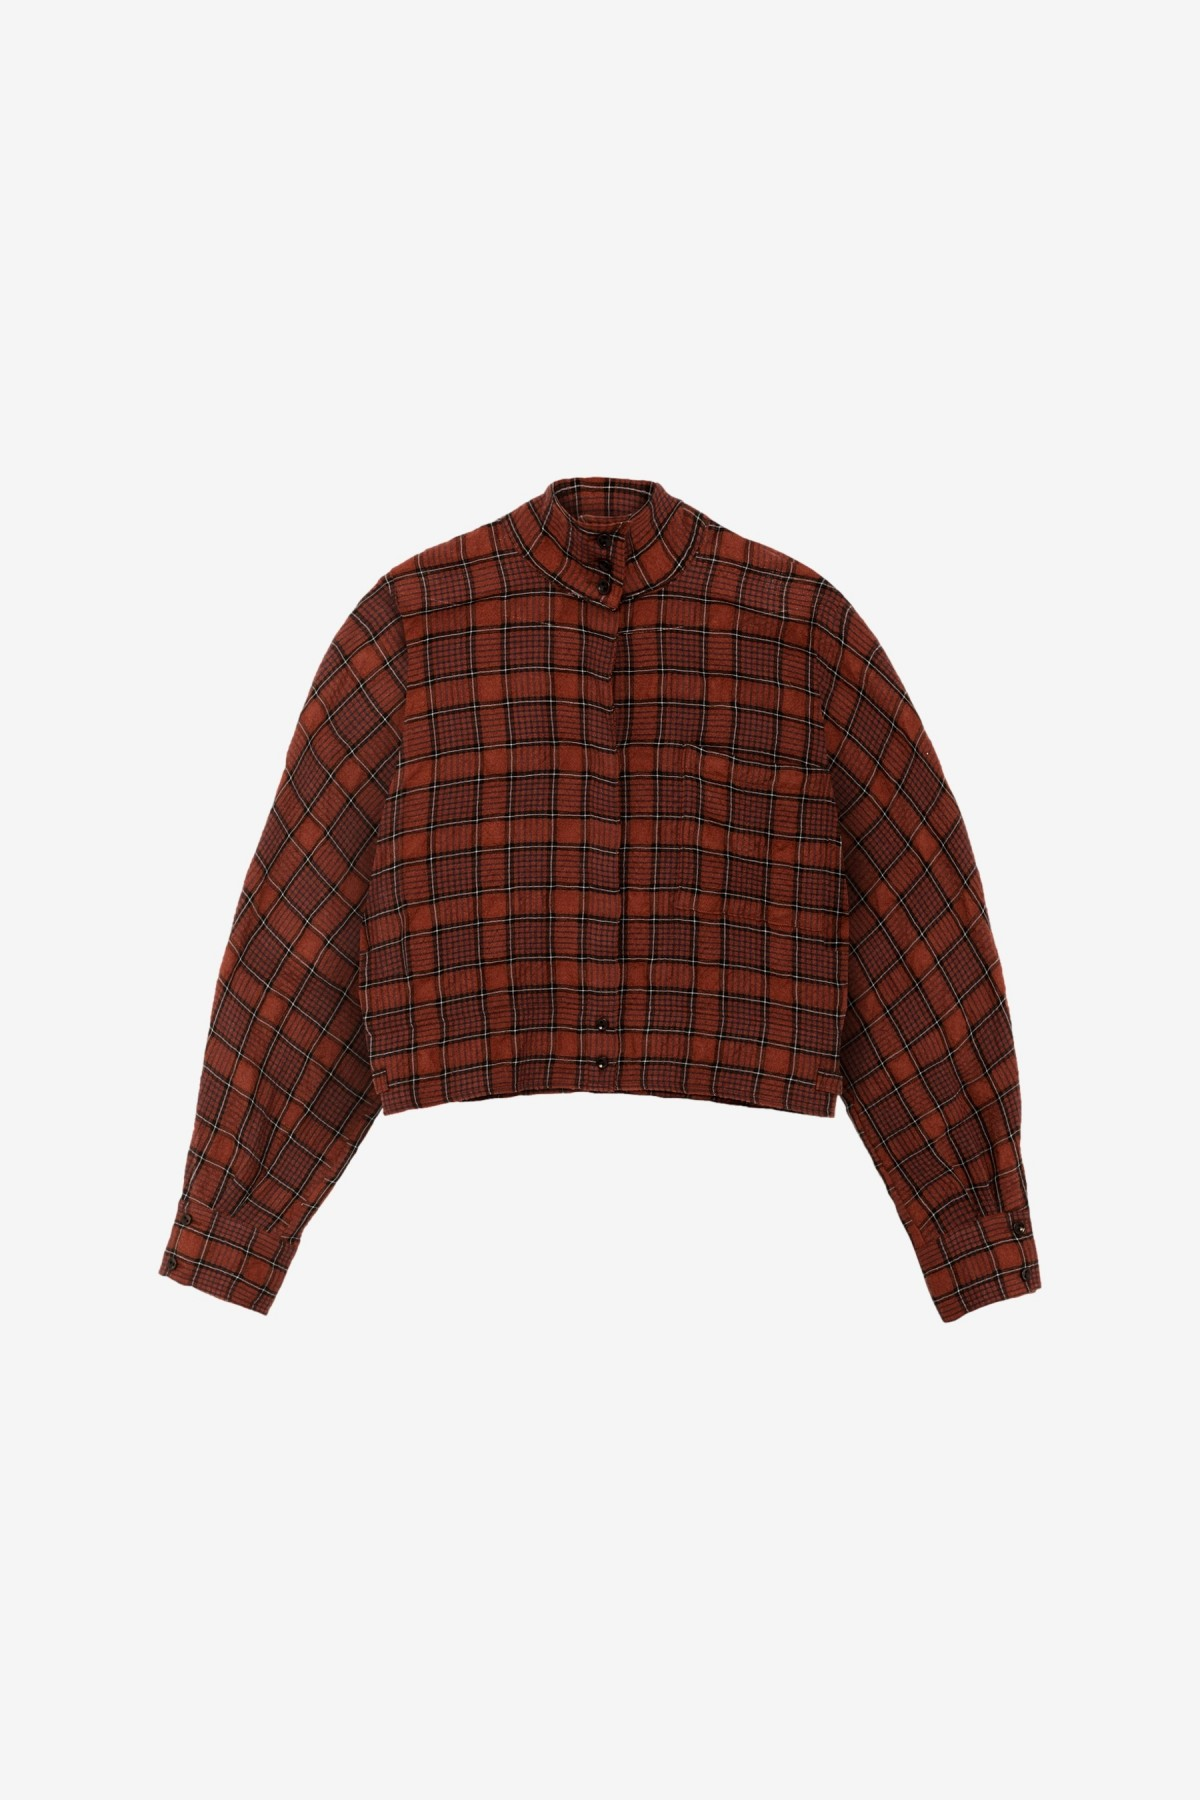 YMC You Must Create Polly Shirt in Red/Black